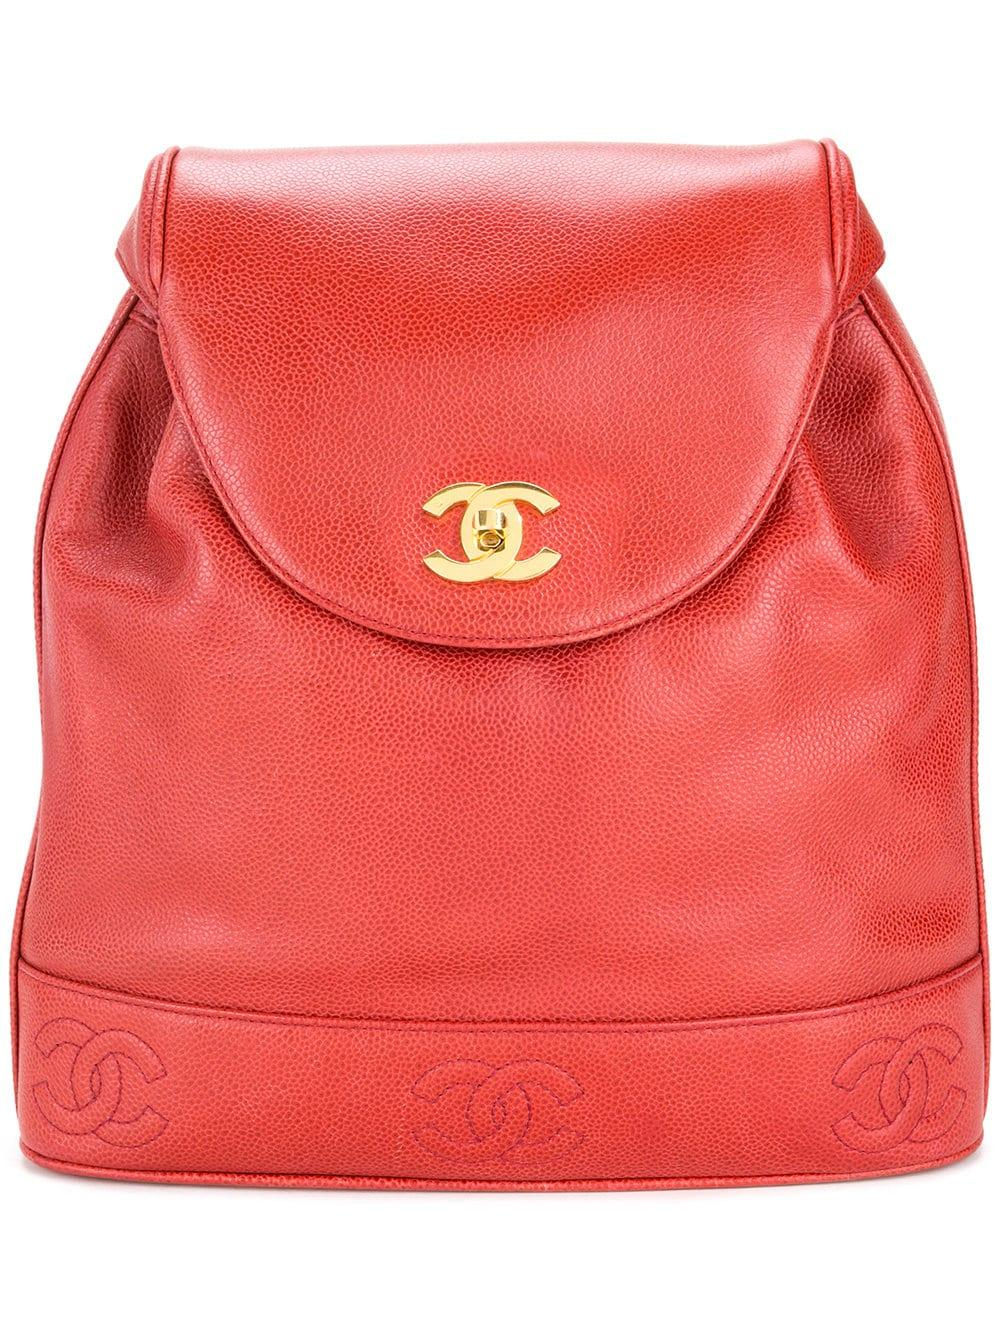 43f59947c26e Chanel Vintage Cc Logos Chain Backpack - Farfetch In Red | ModeSens